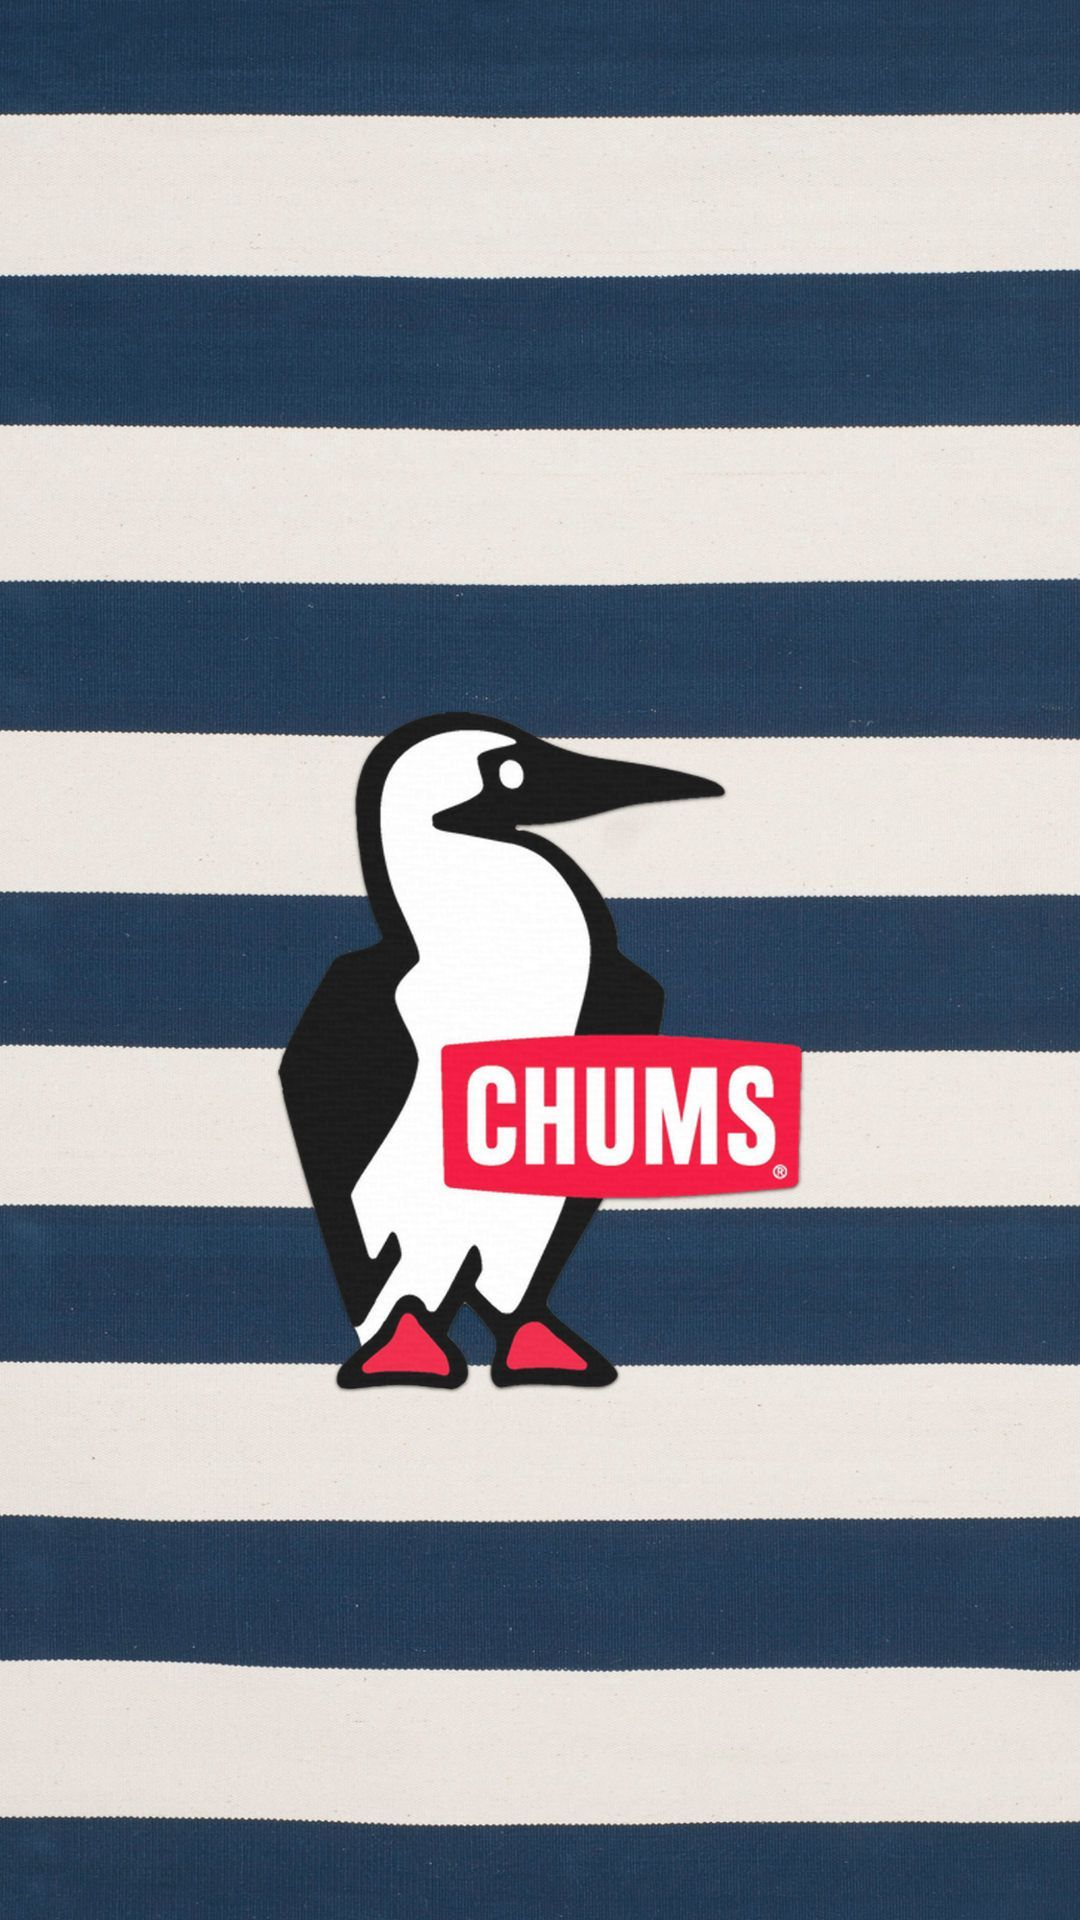 50 Chums Hq Smartphone Wallpaper Collection ロゴ 壁紙